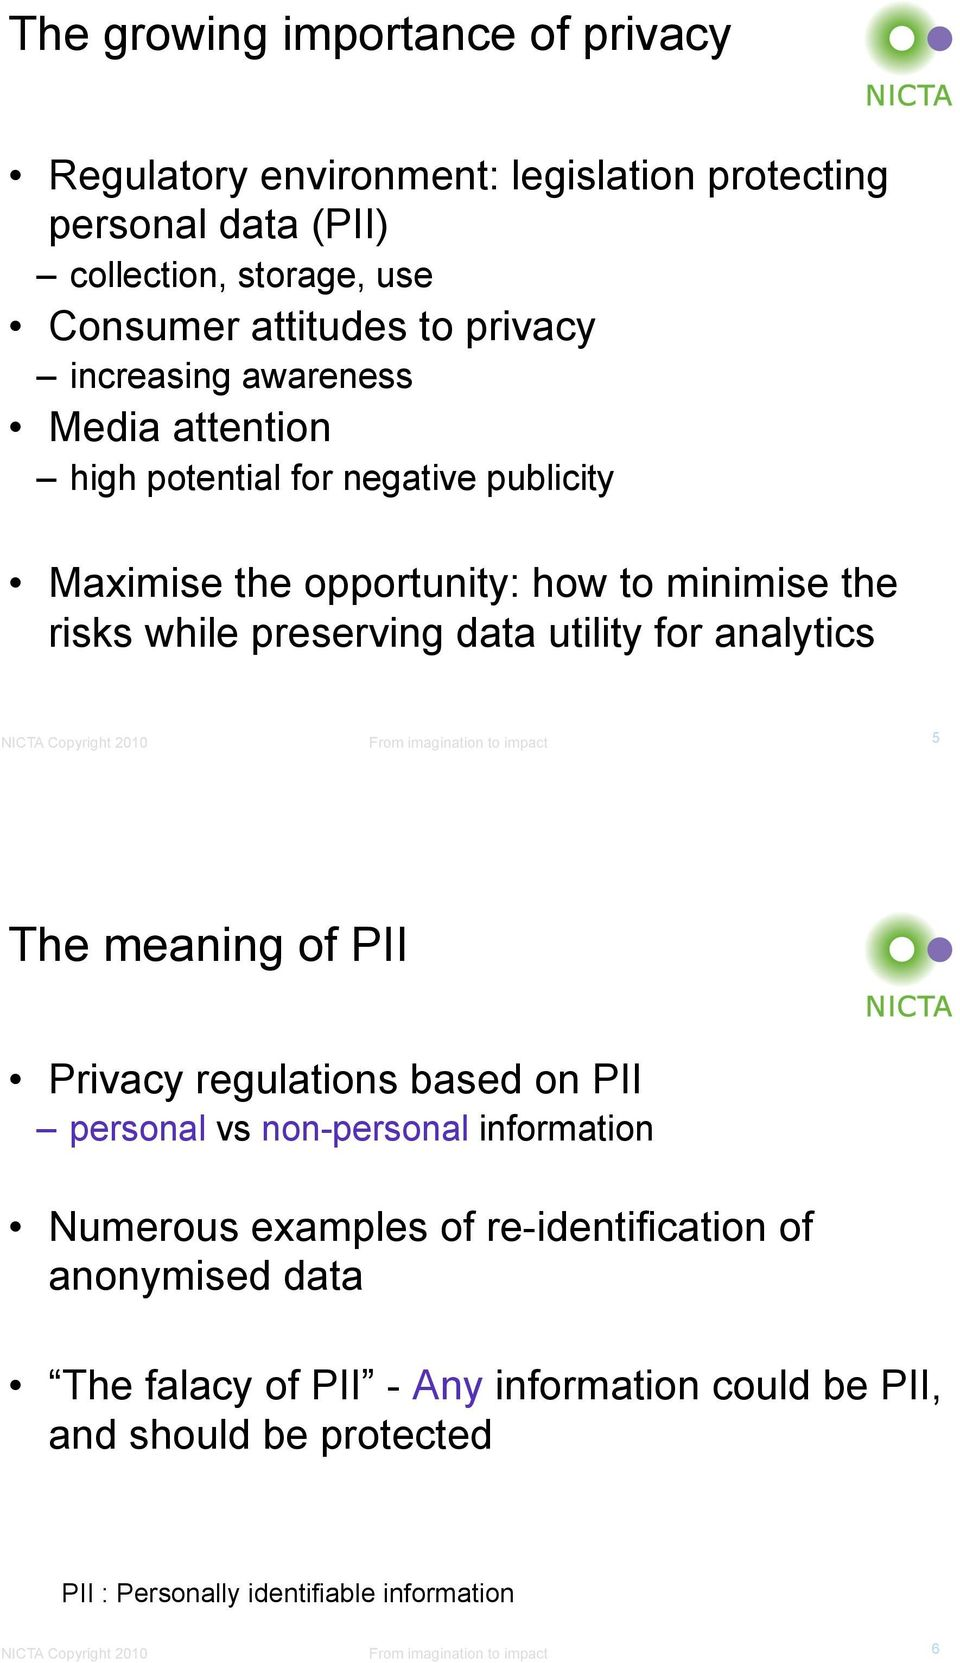 preserving data utility for analytics 5 The meaning of PII Privacy regulations based on PII personal vs non-personal information Numerous examples